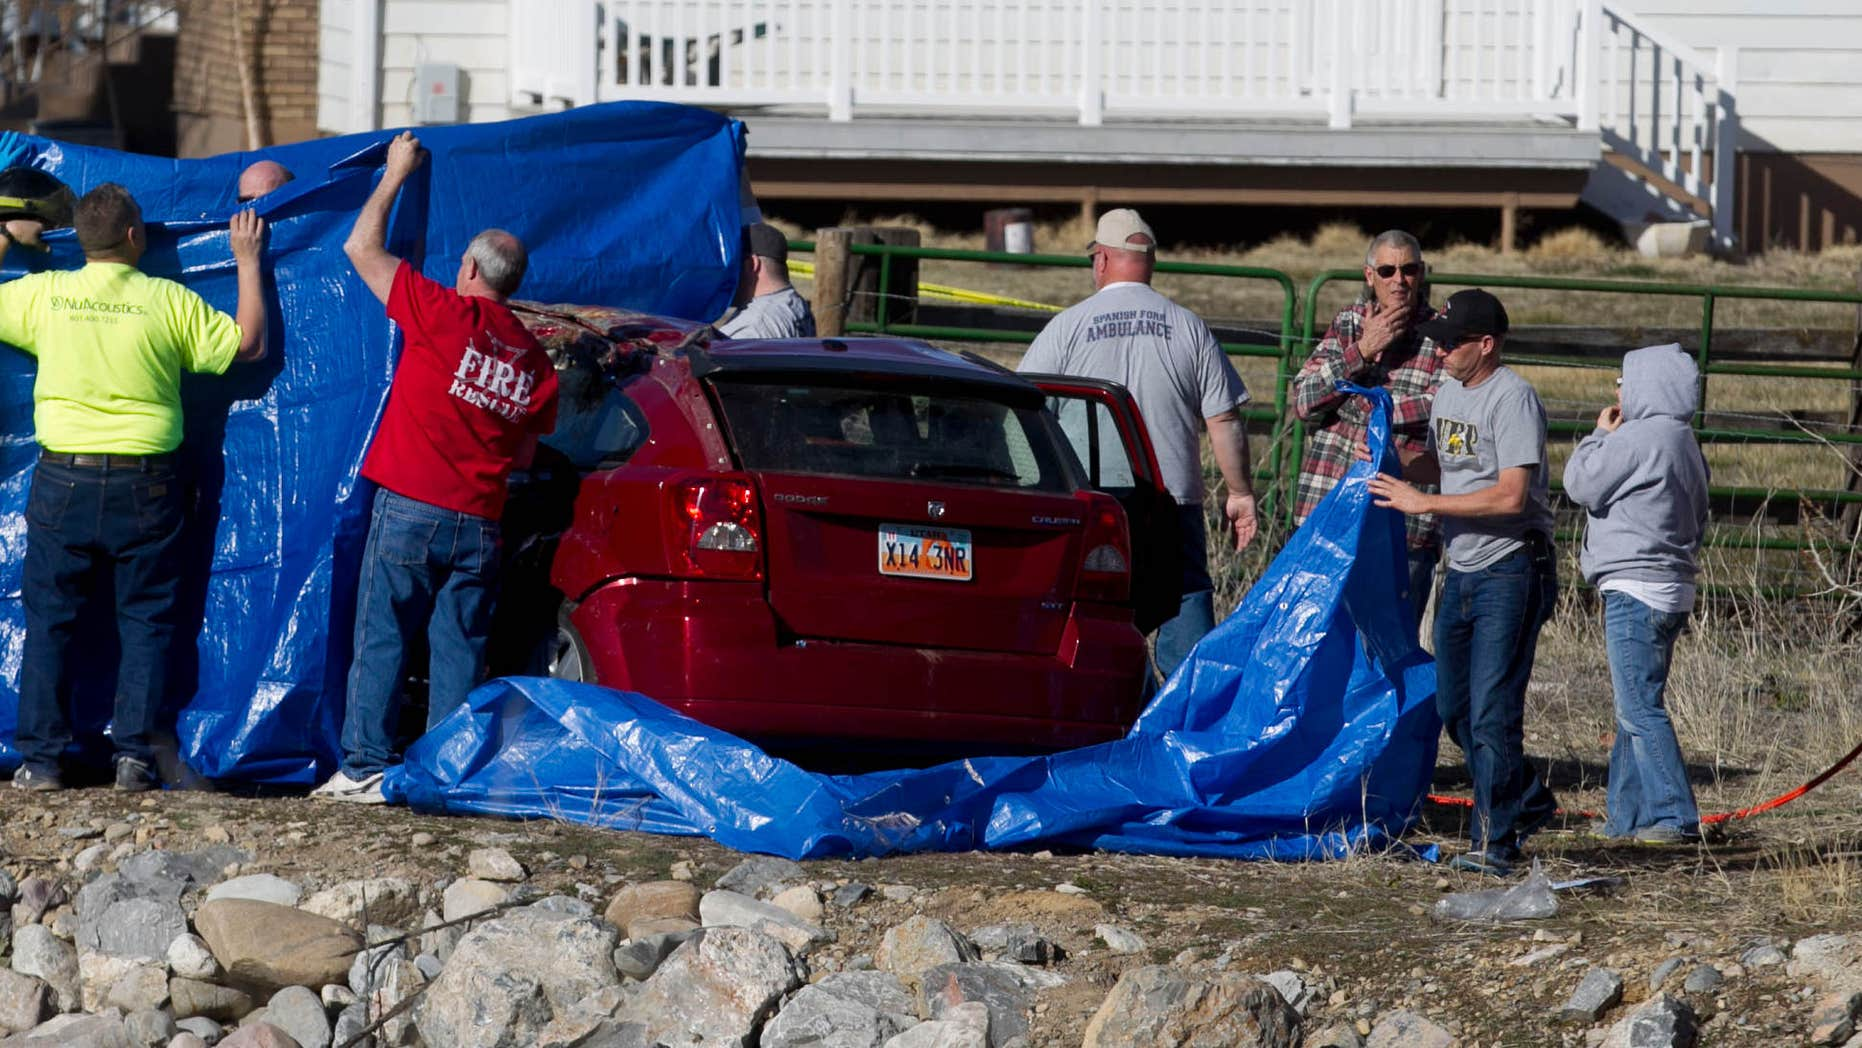 March 7, 2015: Officials respond to a report of car in the Spanish Fork River near the Main Street and the Arrowhead Trail Road junction in Spanish Fork, Utah.